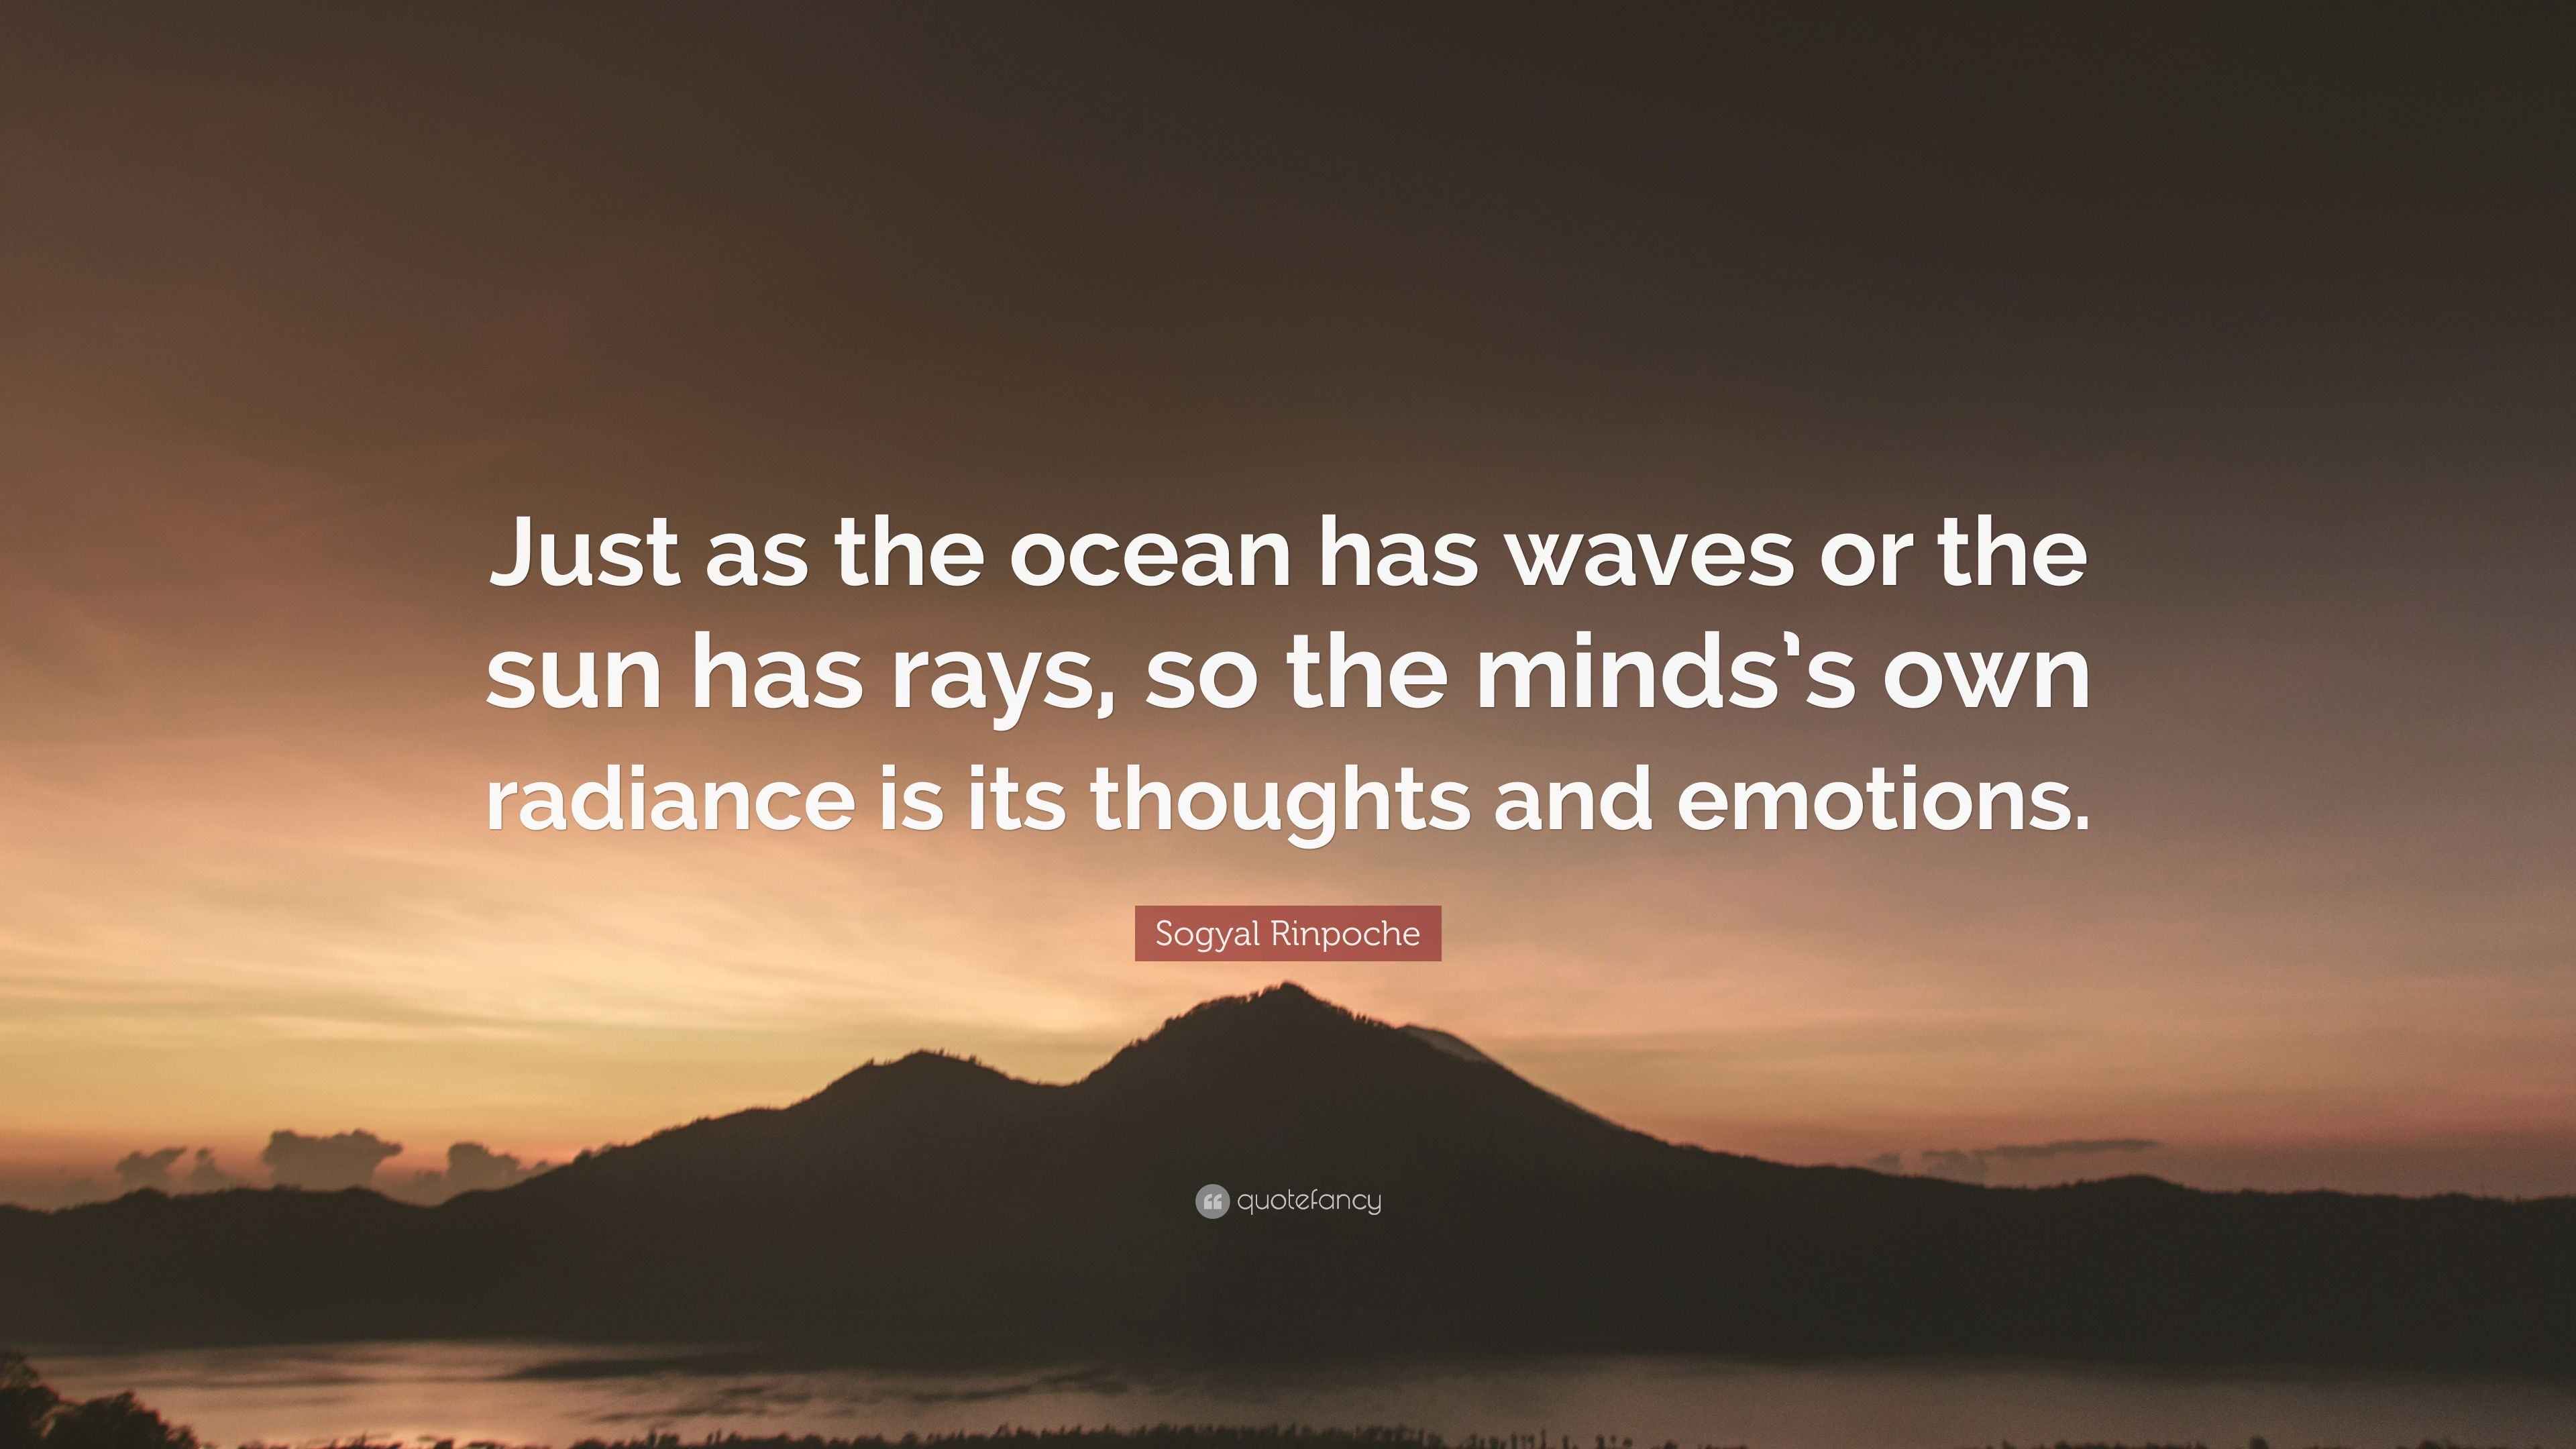 Sogyal Rinpoche Quote Just As The Ocean Has Waves Or The Sun Has